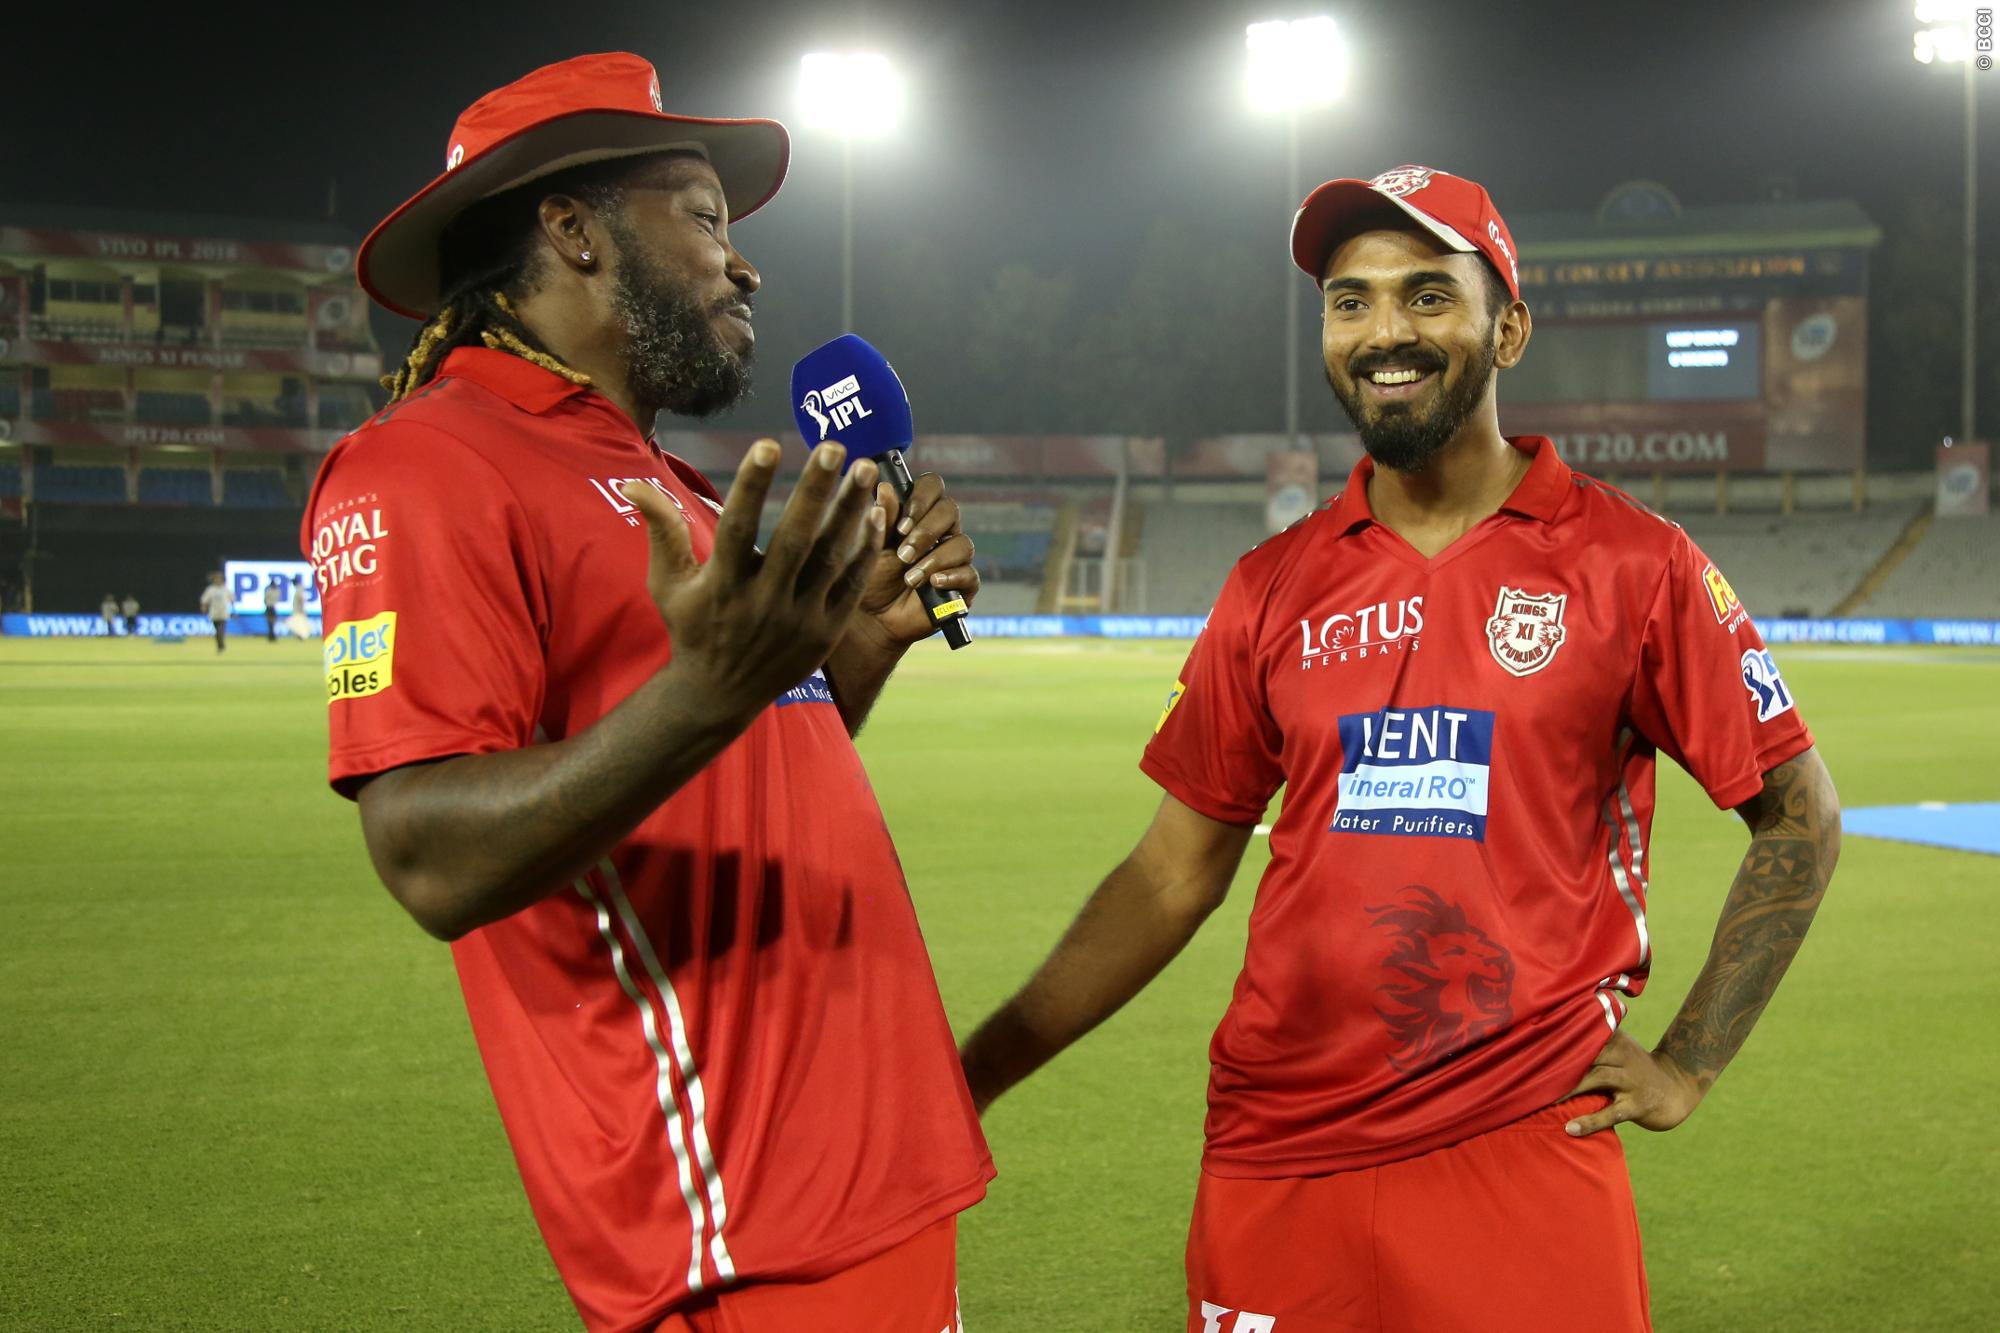 Chris Gayle and KL Rahul share a light moment during IPL 11. (Image: IPLT20.com)